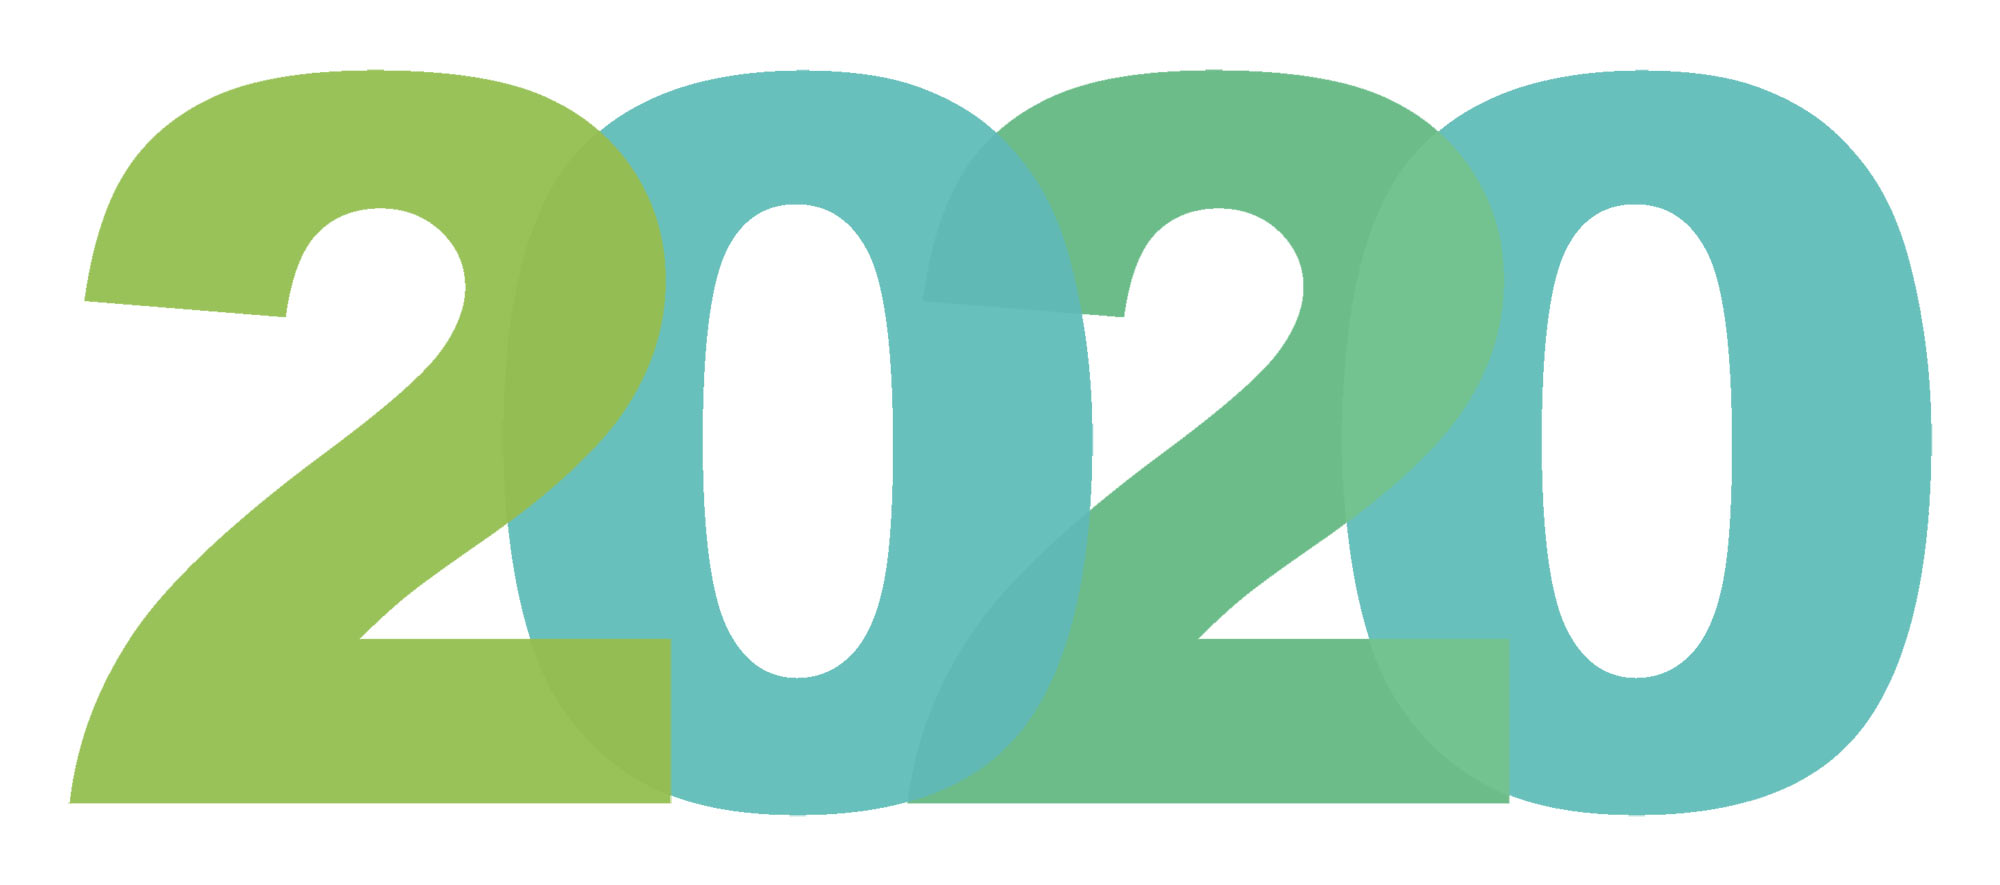 Make Things Happen in 2020 - is your website ready for 2020?